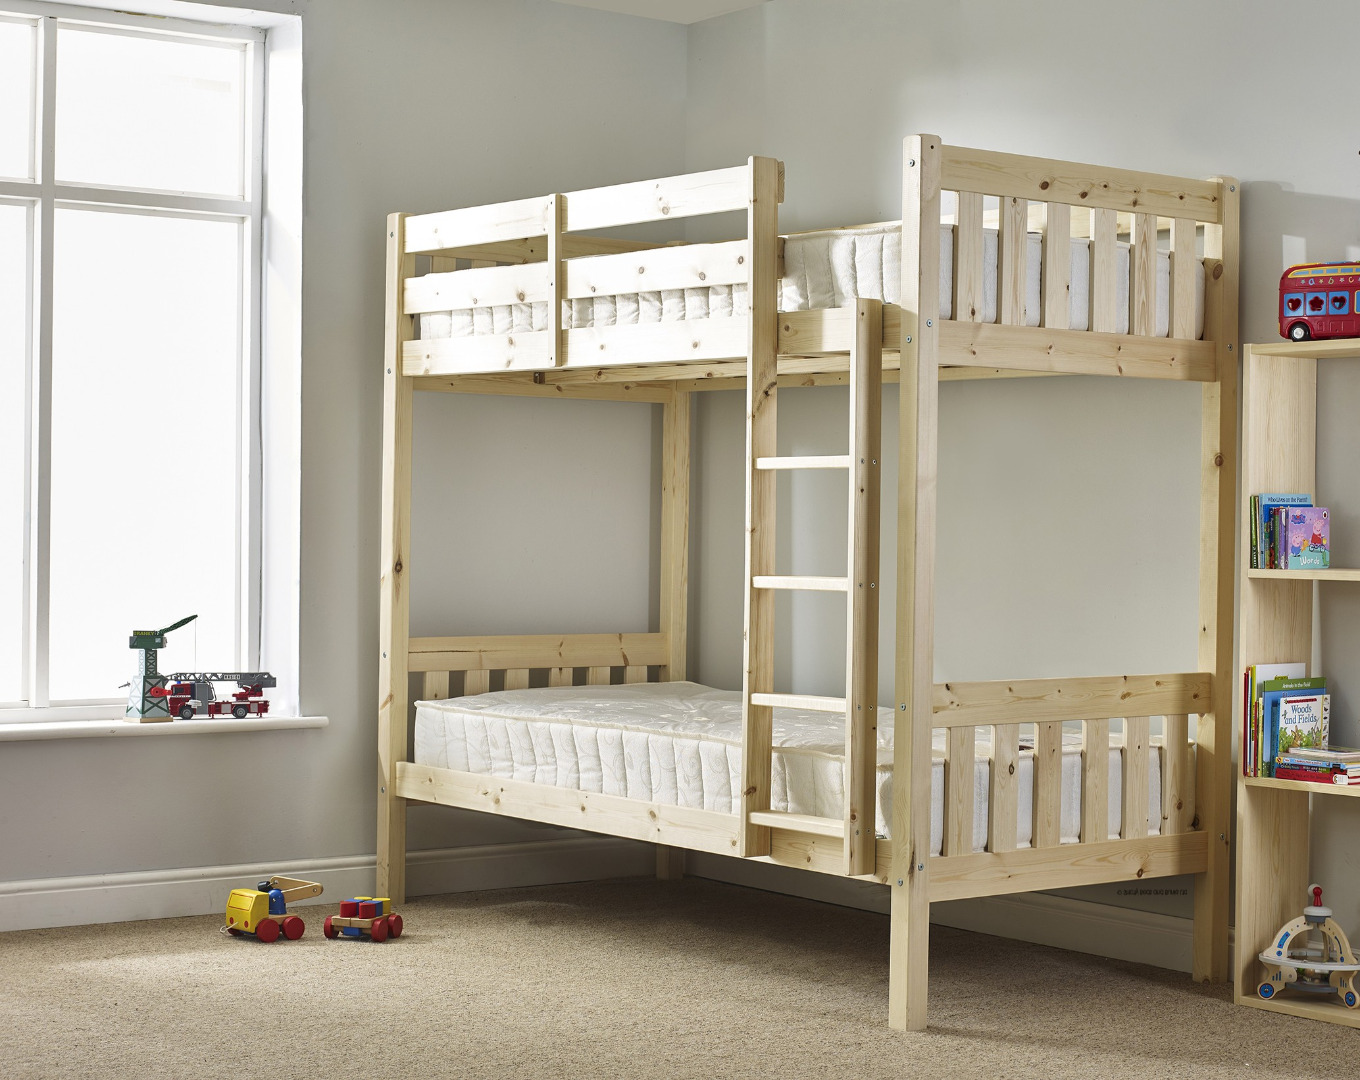 Cypress 2ft 6 Small Single Solid Pine HEAVY DUTY Bunk Bed